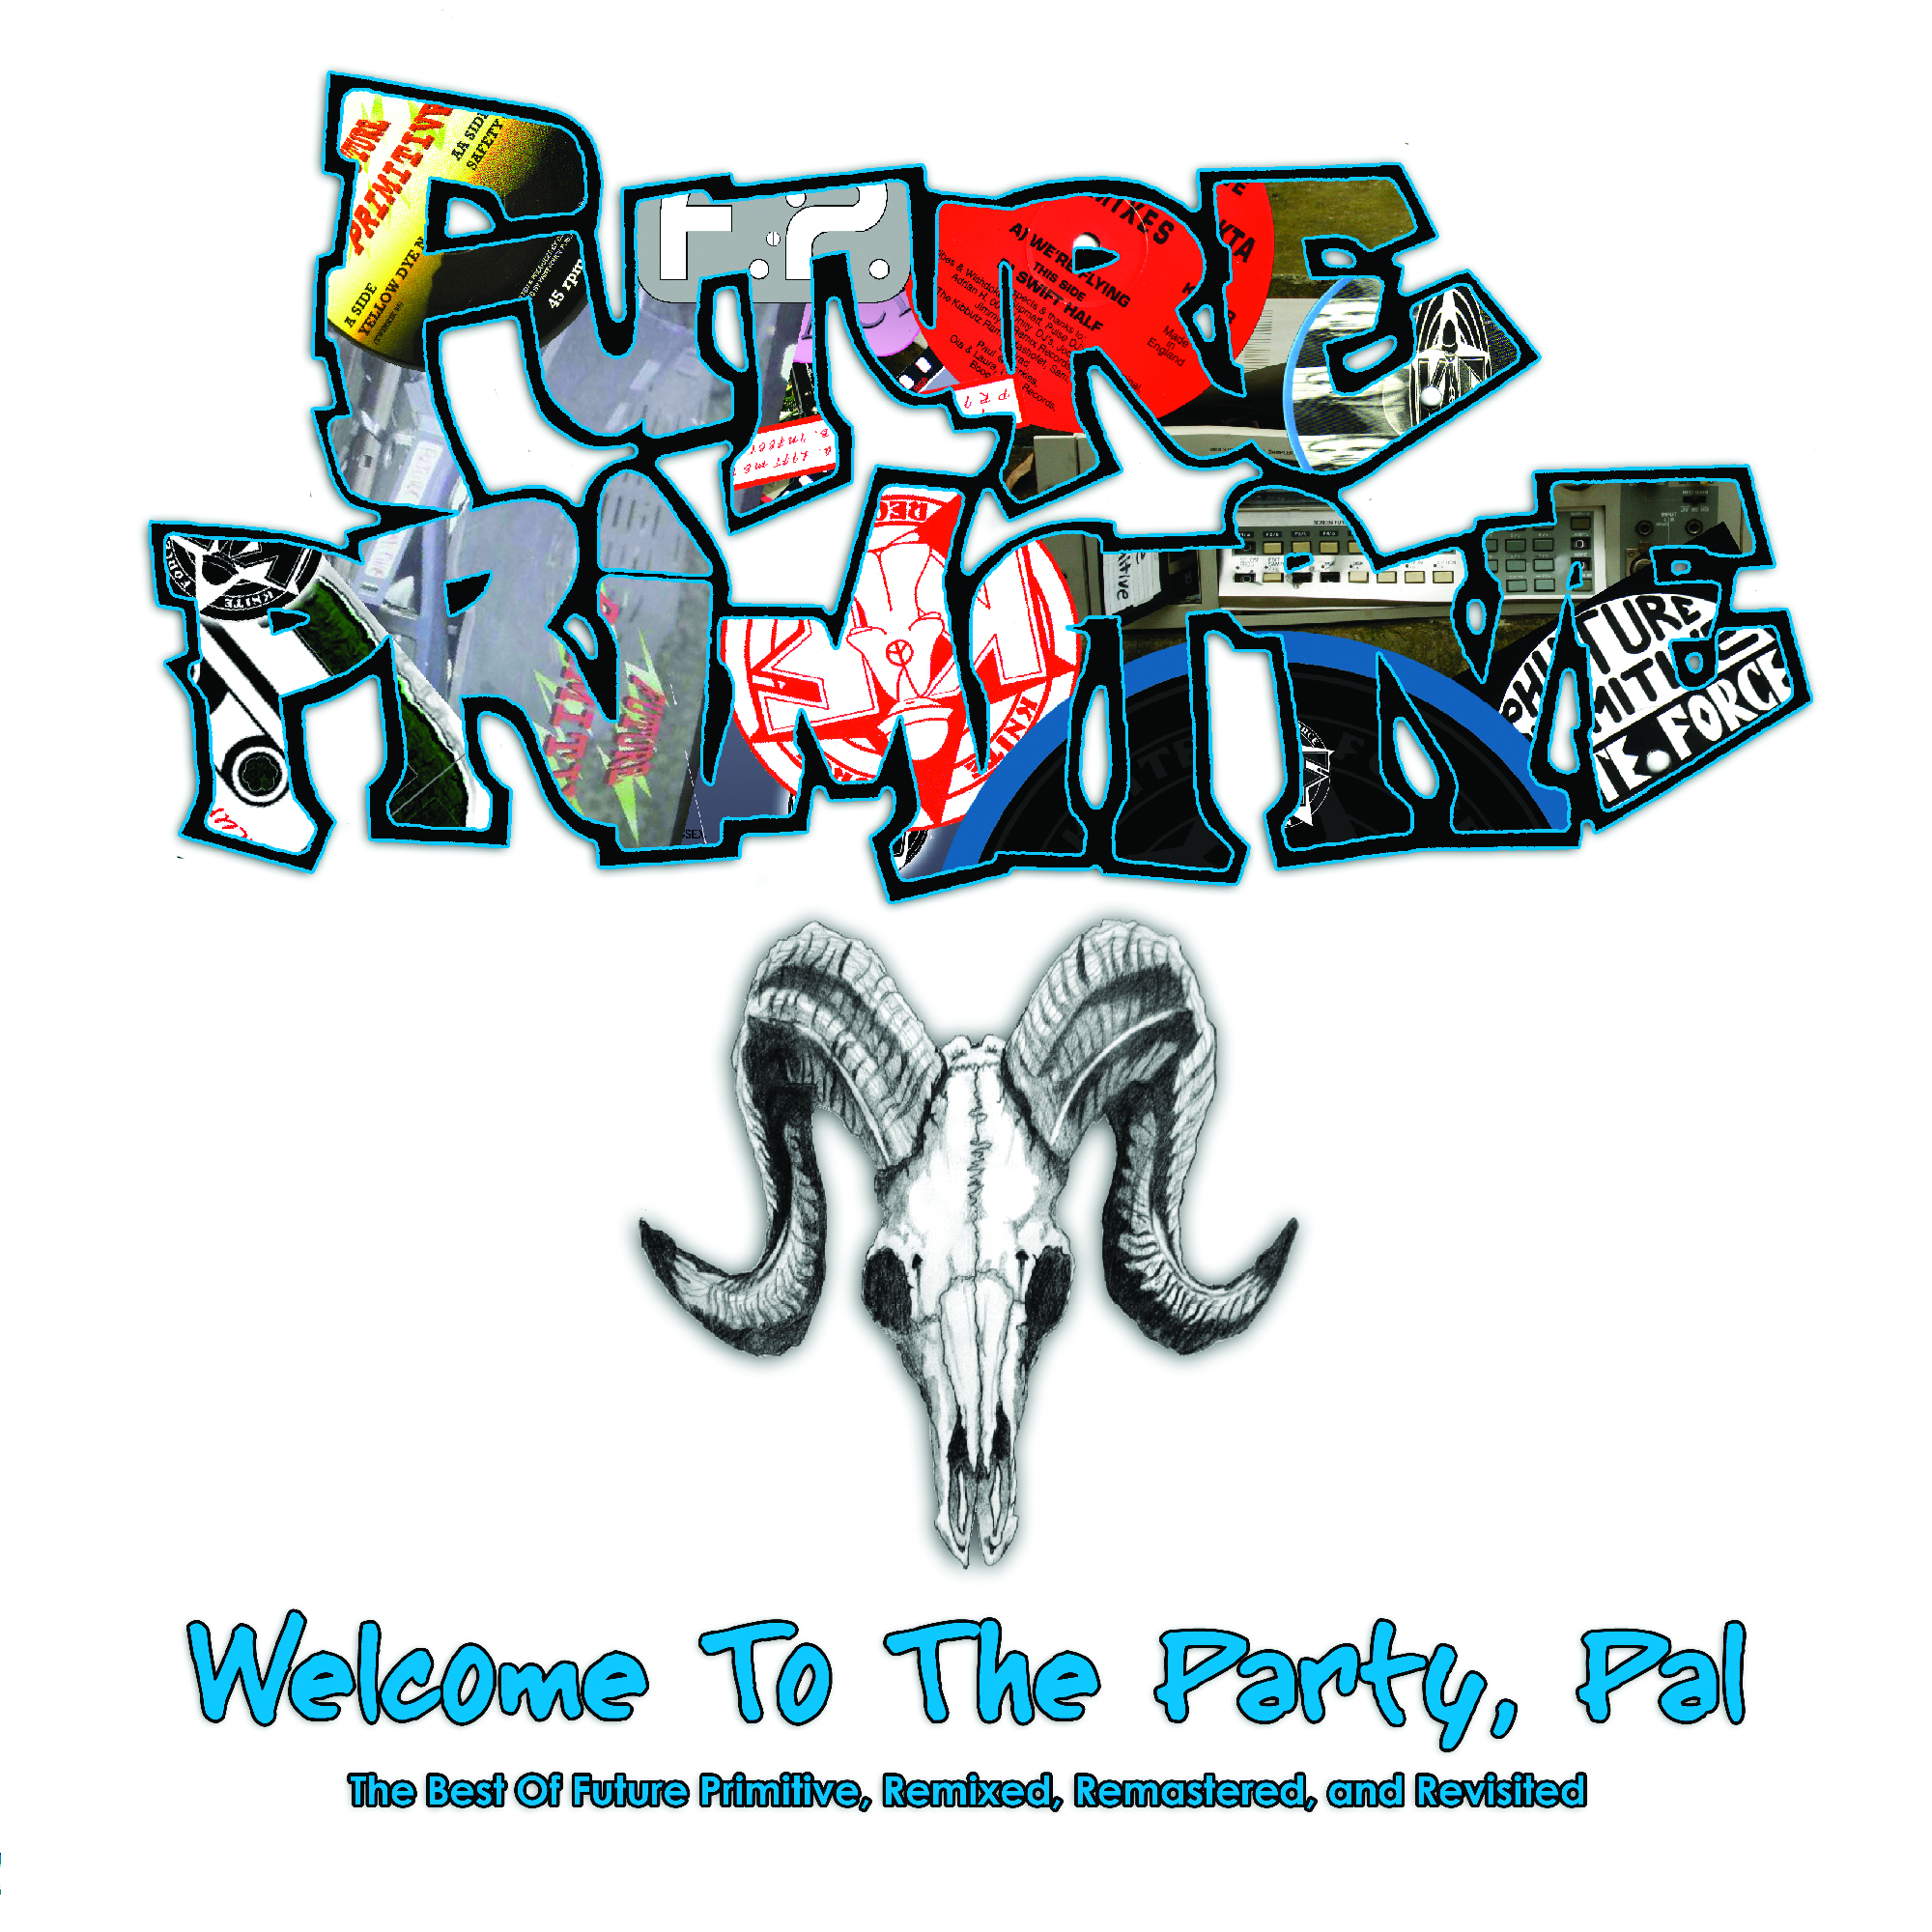 [KFCD009] Future Primitive - Welcome To The Party Pal! (Digital Only)